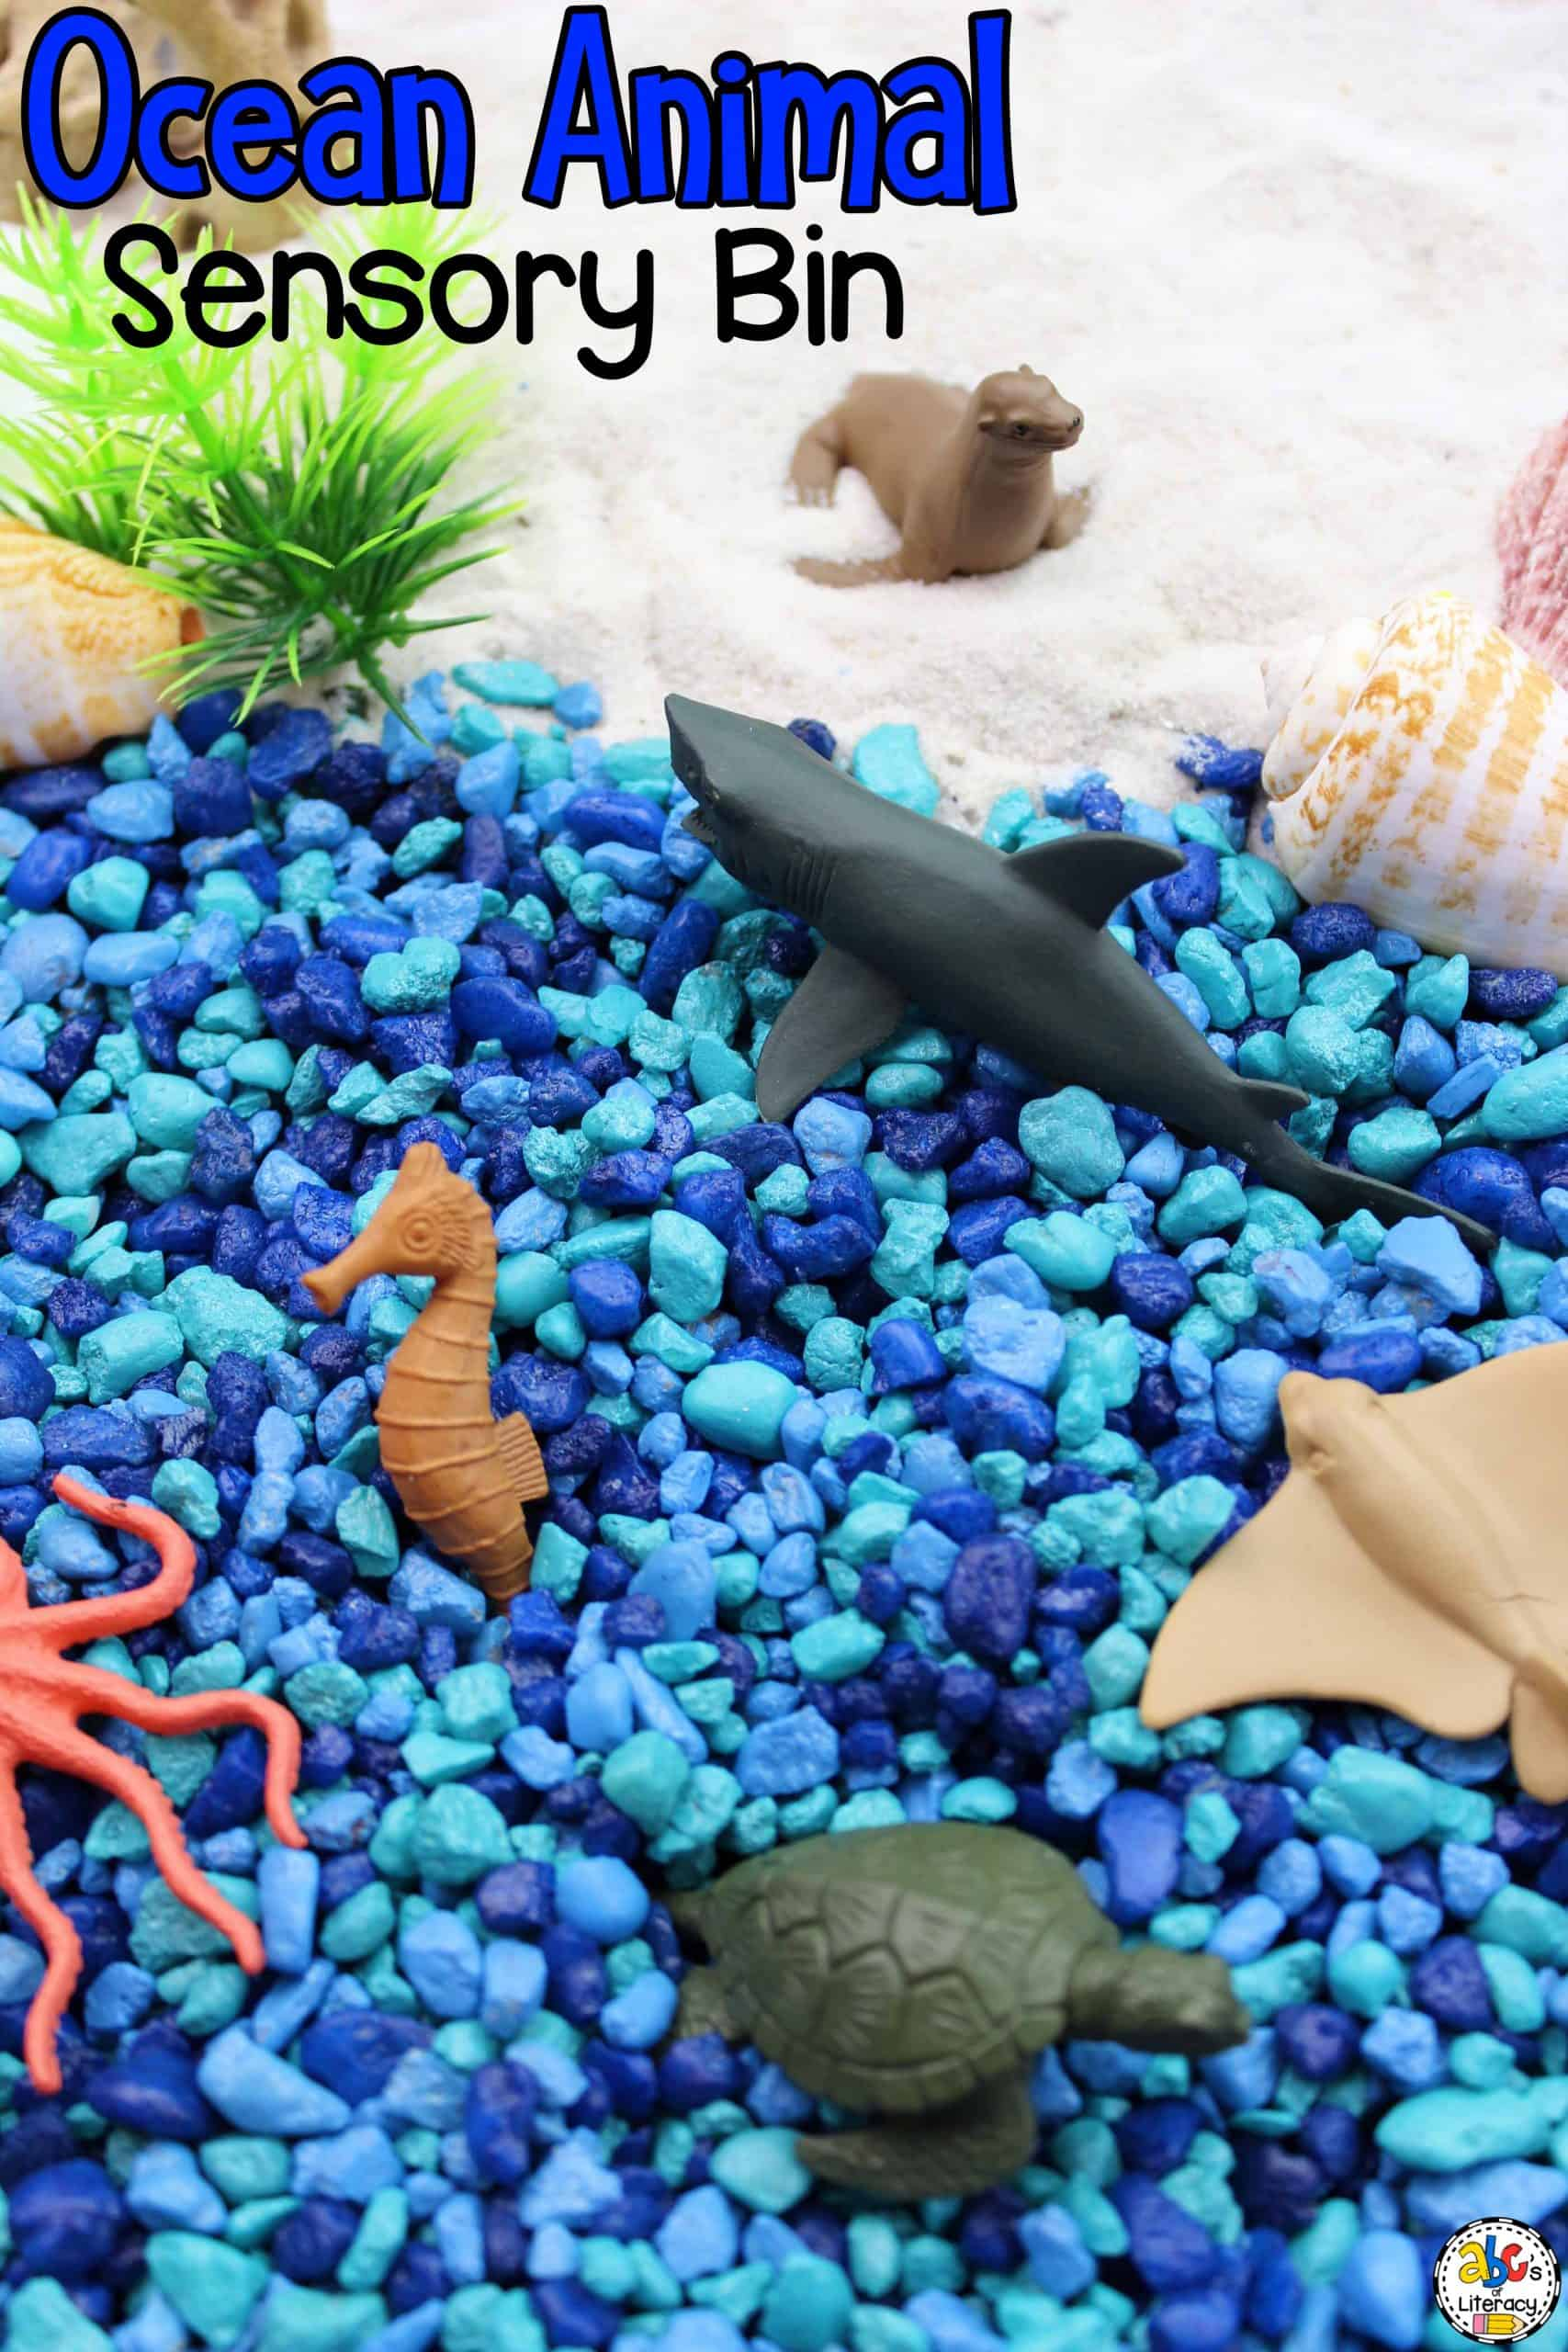 Ocean Animal Sensory Bin for Sensory Play